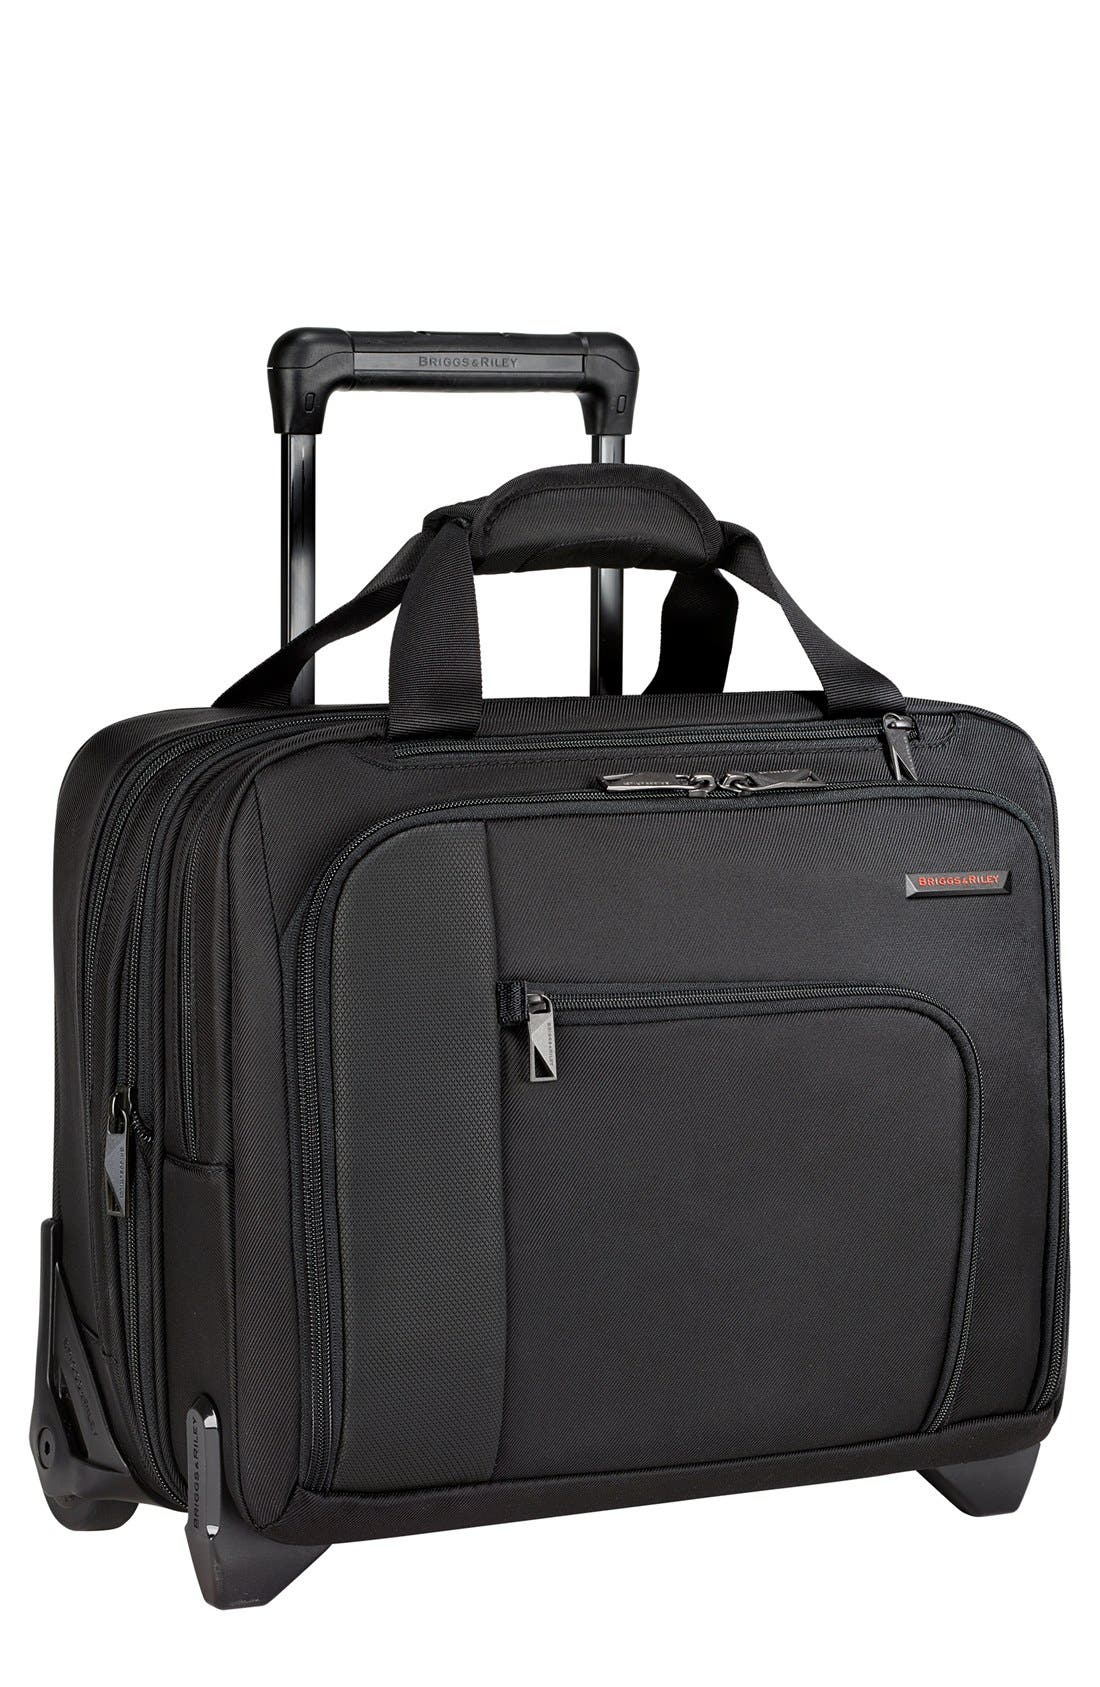 'Verb - Propel' Rolling Briefcase,                             Main thumbnail 1, color,                             Black